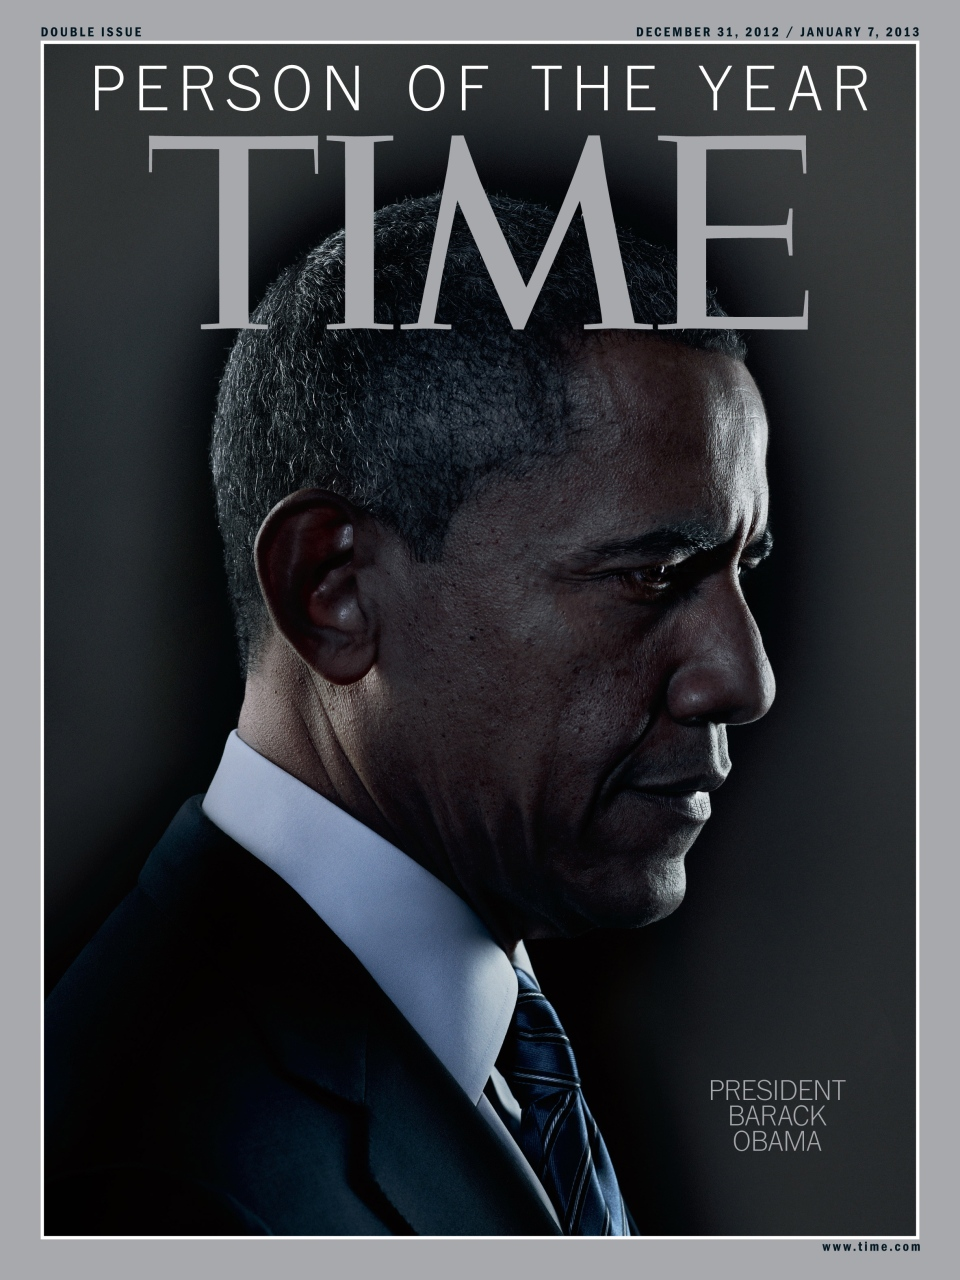 U.S. President Barack Obama was named Time Magazine's Person of the Year. The short list for the honor included Malala Yousafzai, the Pakistani teenager who was shot in the head for advocating for girls' education. It also included Egyptian president Mohamed Morsi, Apple CEO Tim Cook and Italian physicist Fabiola Giannati. Obama also received the honor in 2008, when he was President-elect.  (Time Magazine)